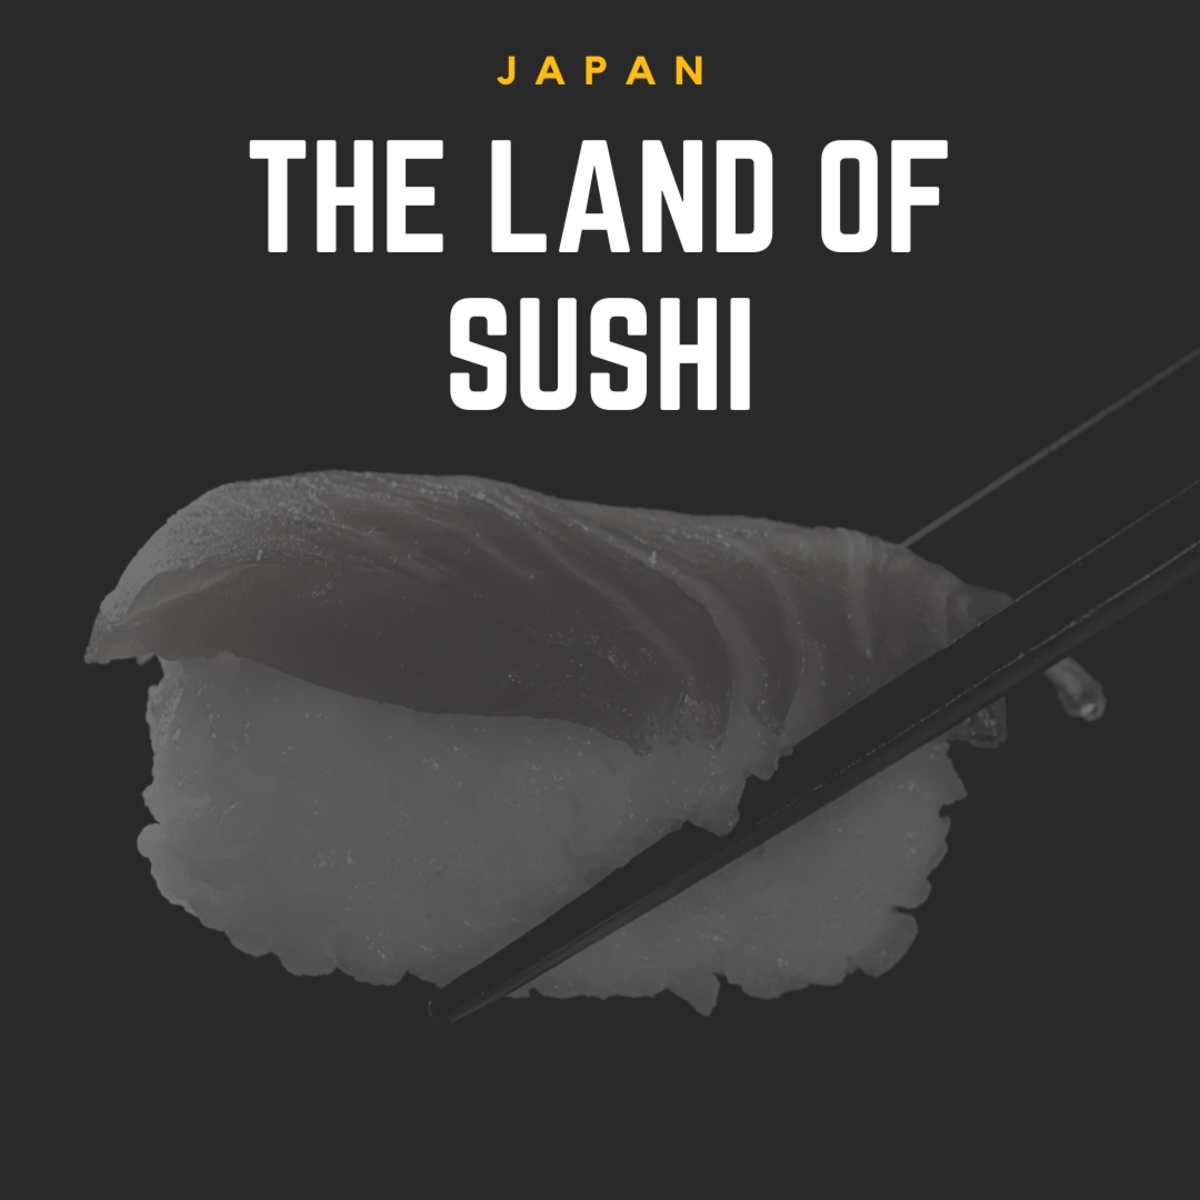 Looking for the best sushi in Japan? Read on!